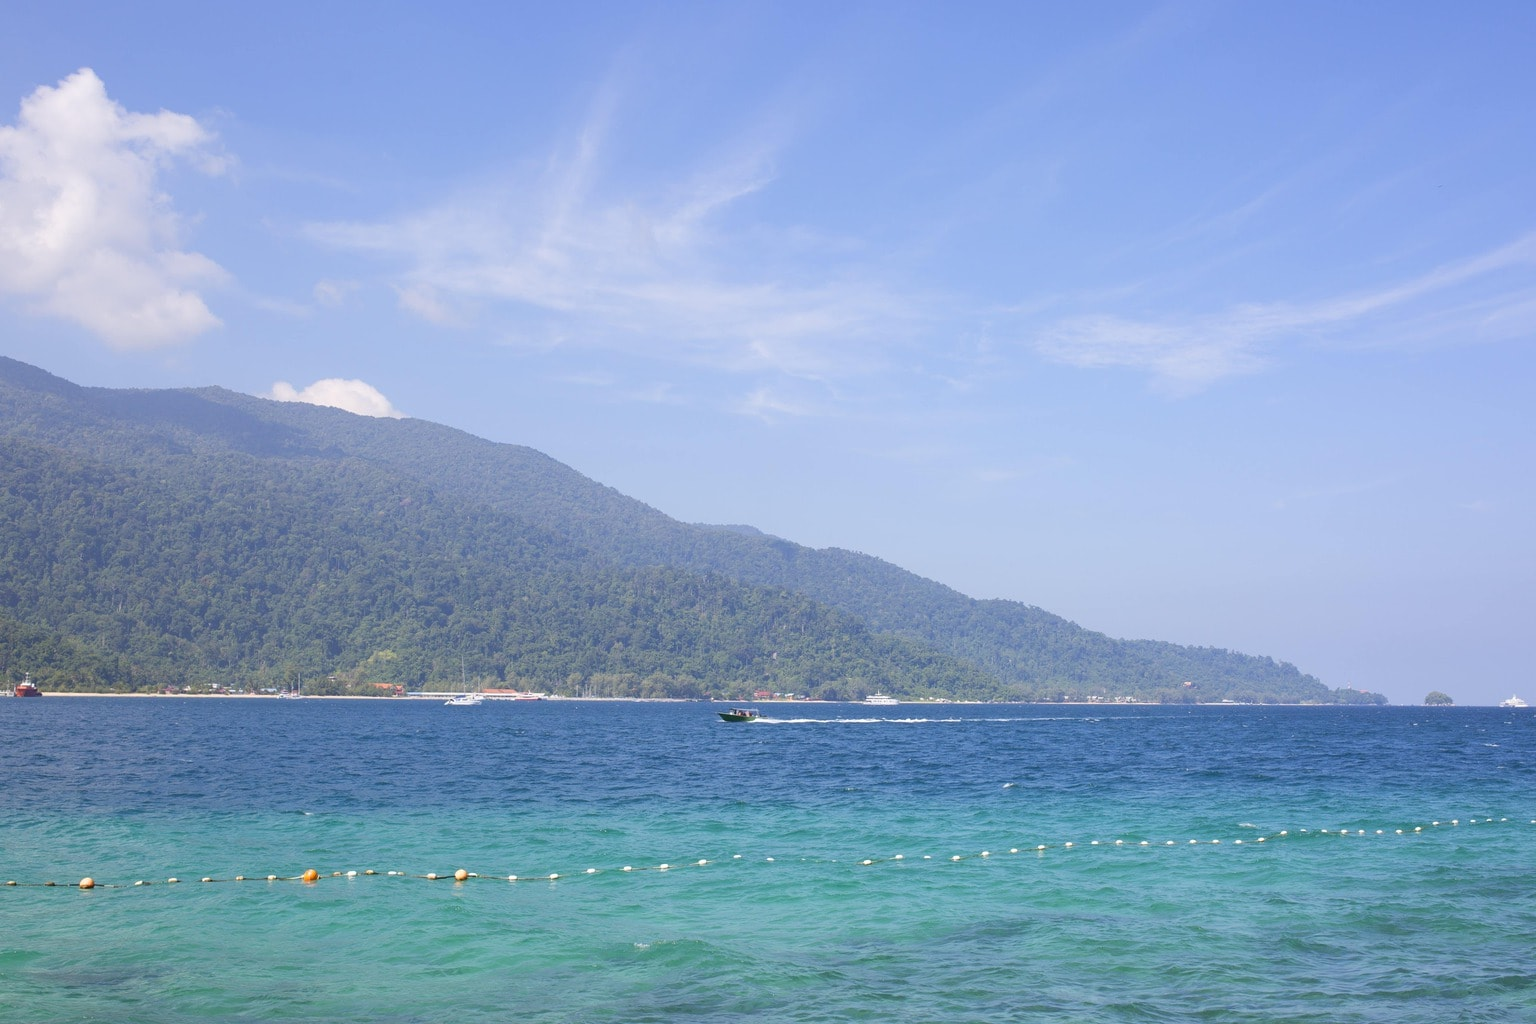 Tioman Island from the ocean